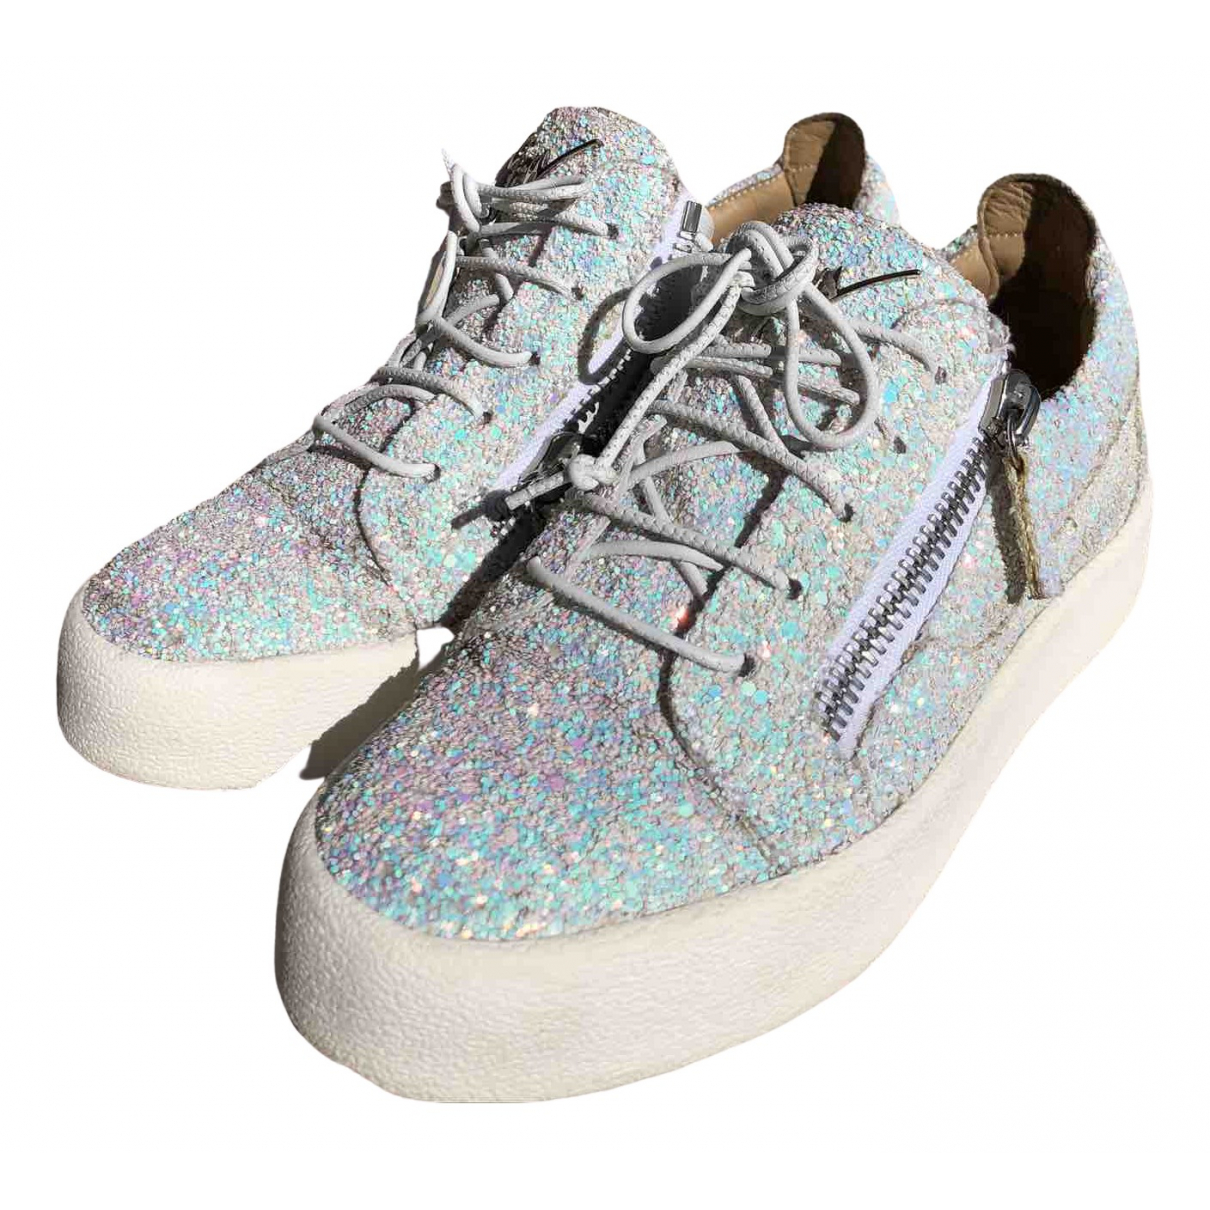 Giuseppe Zanotti Nicki White Glitter Trainers for Women 37 EU